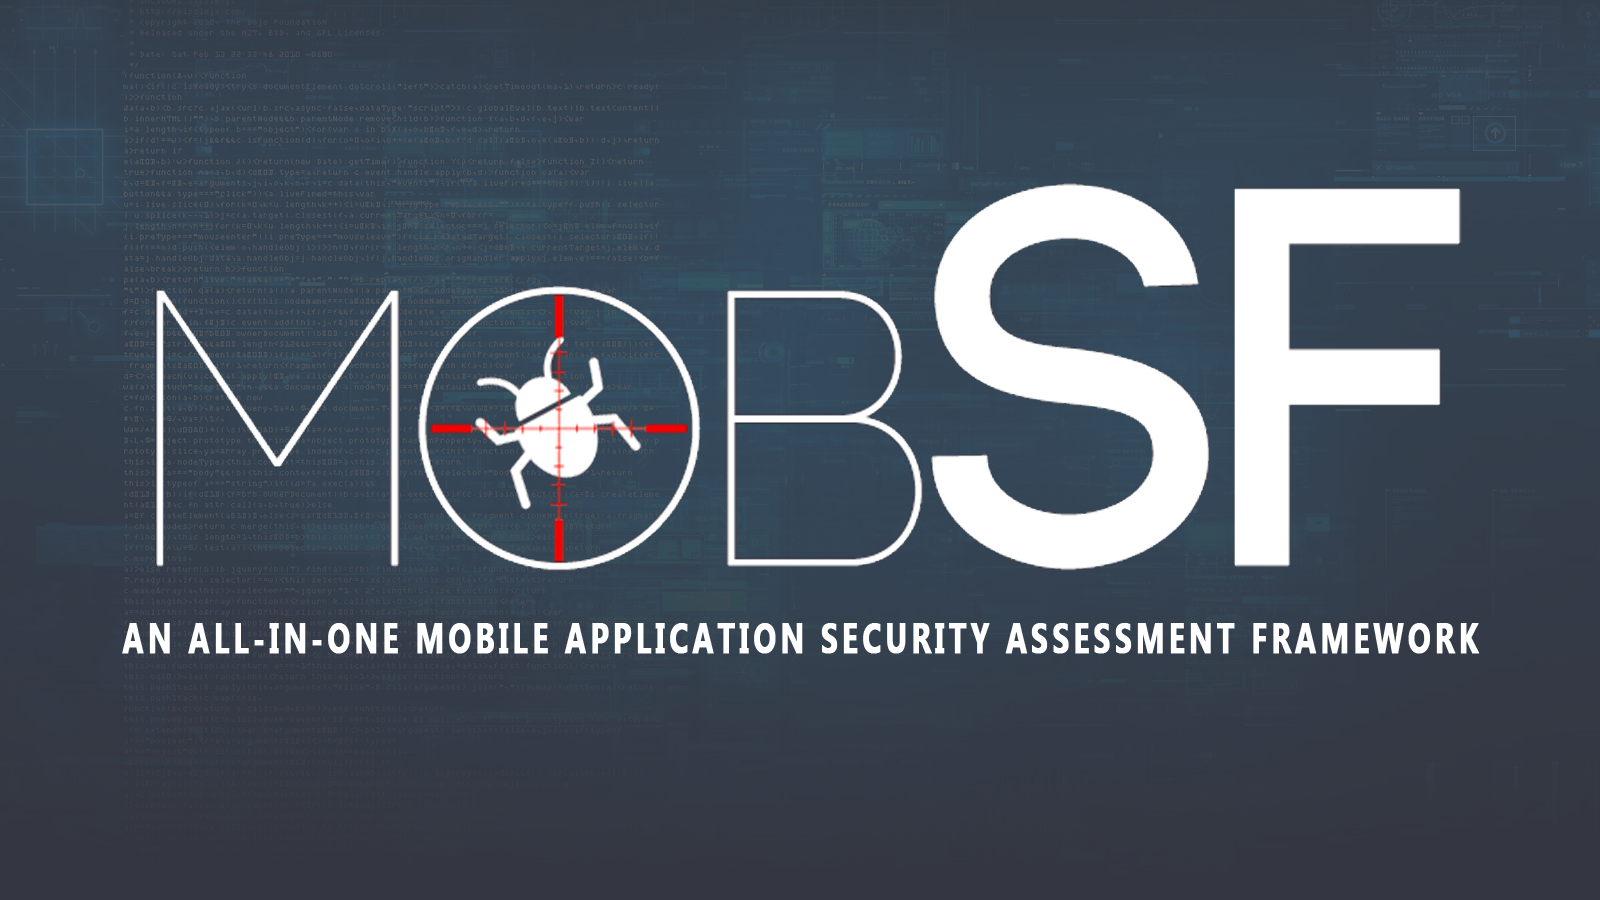 Mobile Security Framework (MobSF) - An All-In-One Mobile Application Security Assessment Framework